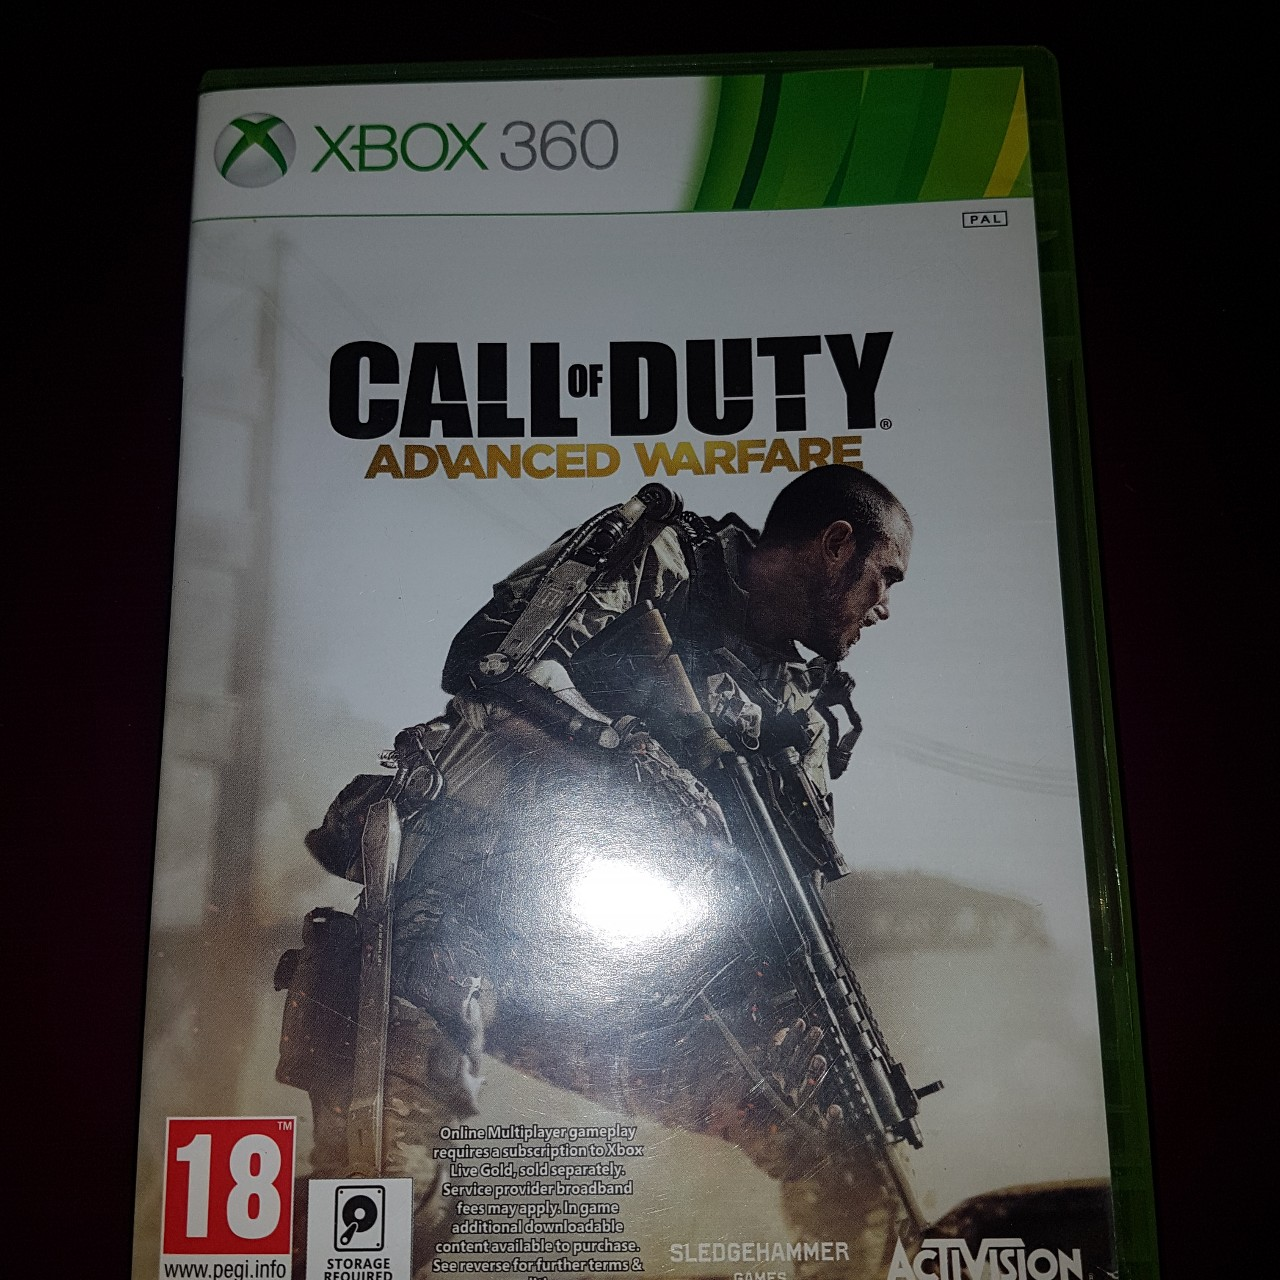 Used xbox 360 games for sale In fully working    - Depop